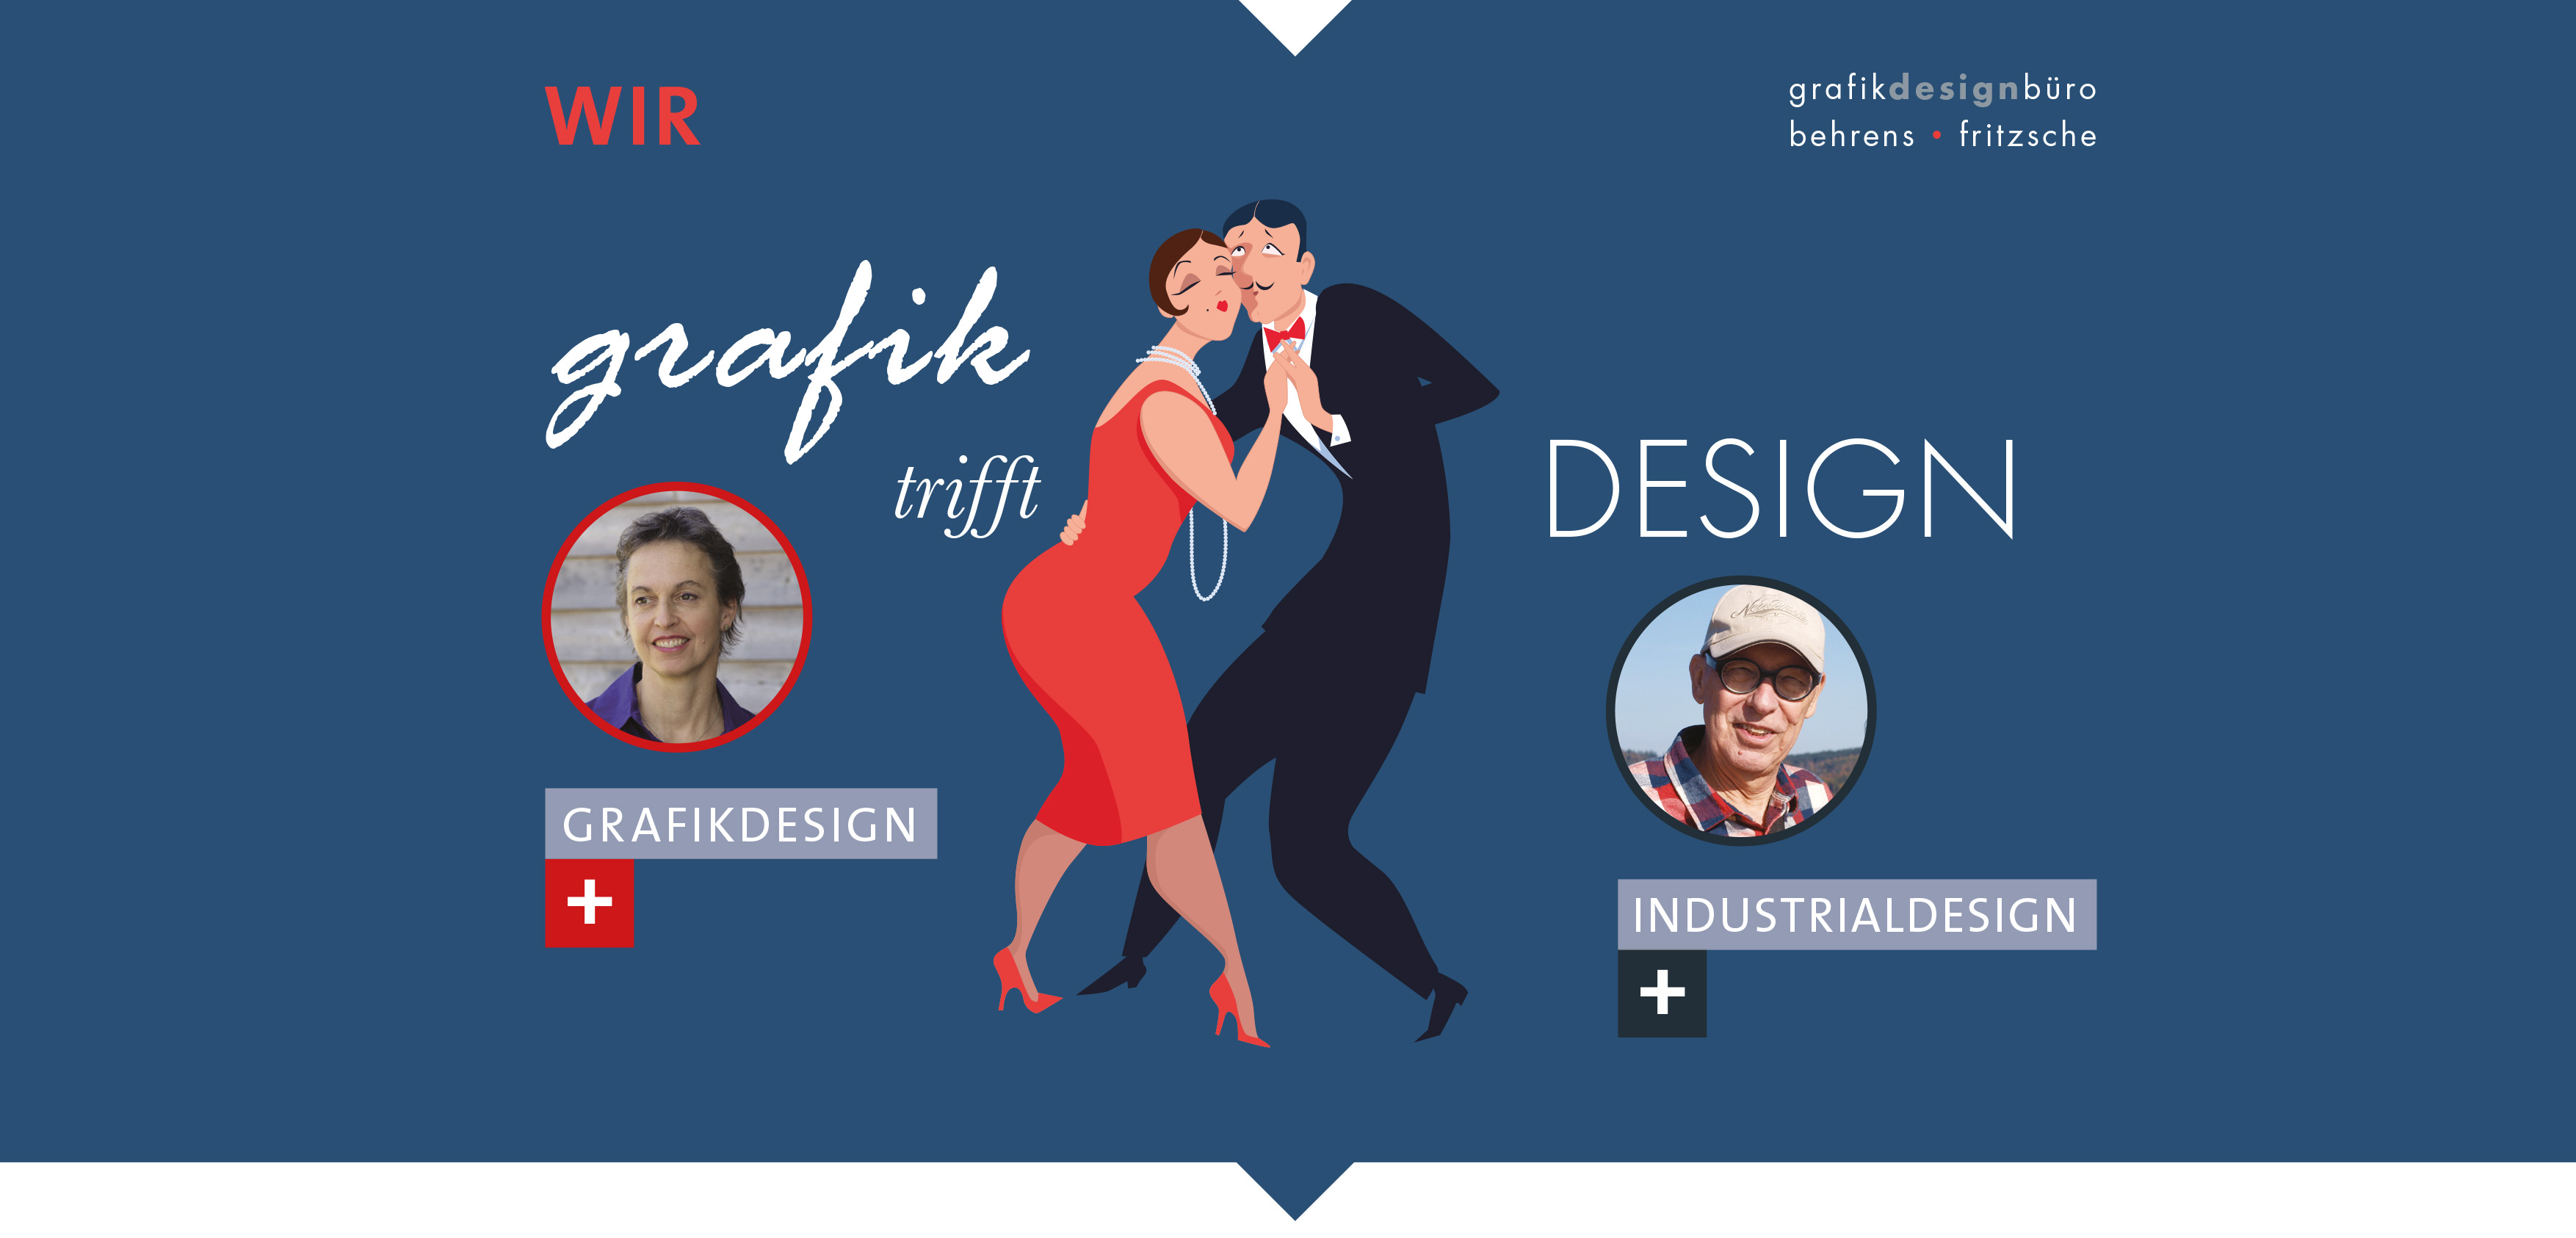 grafik design behrens